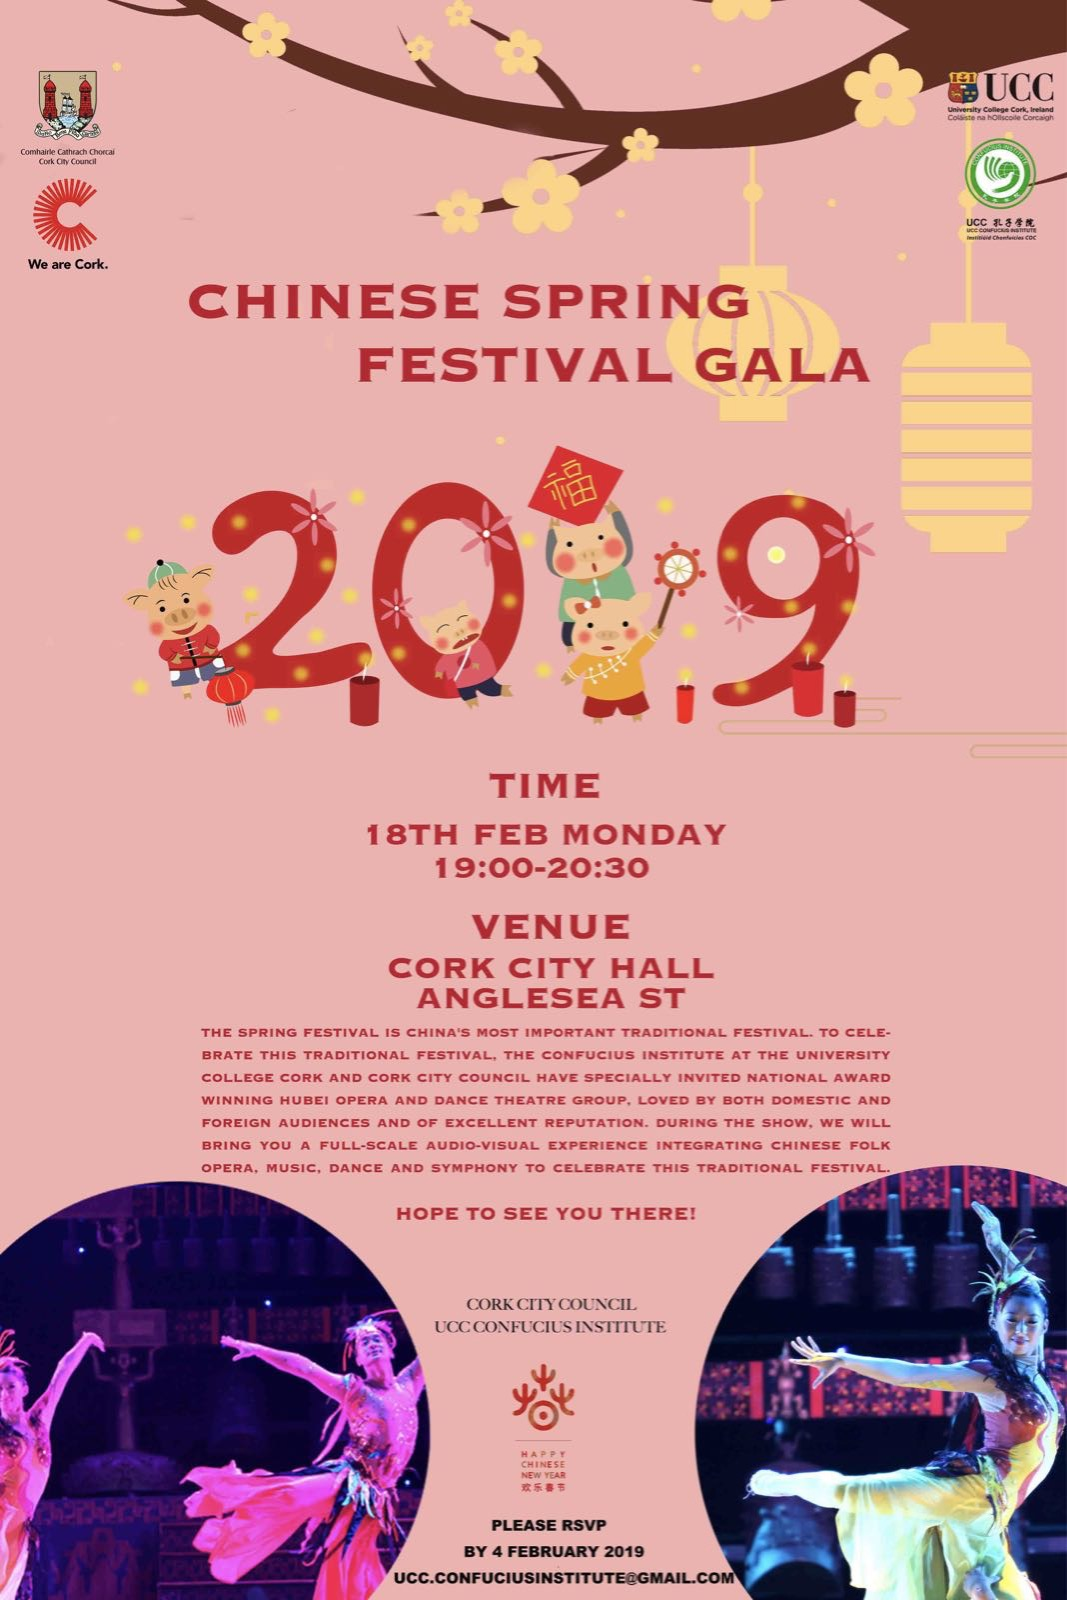 2019 Chinese Spring Festival Gala Can Now Be Booked Online